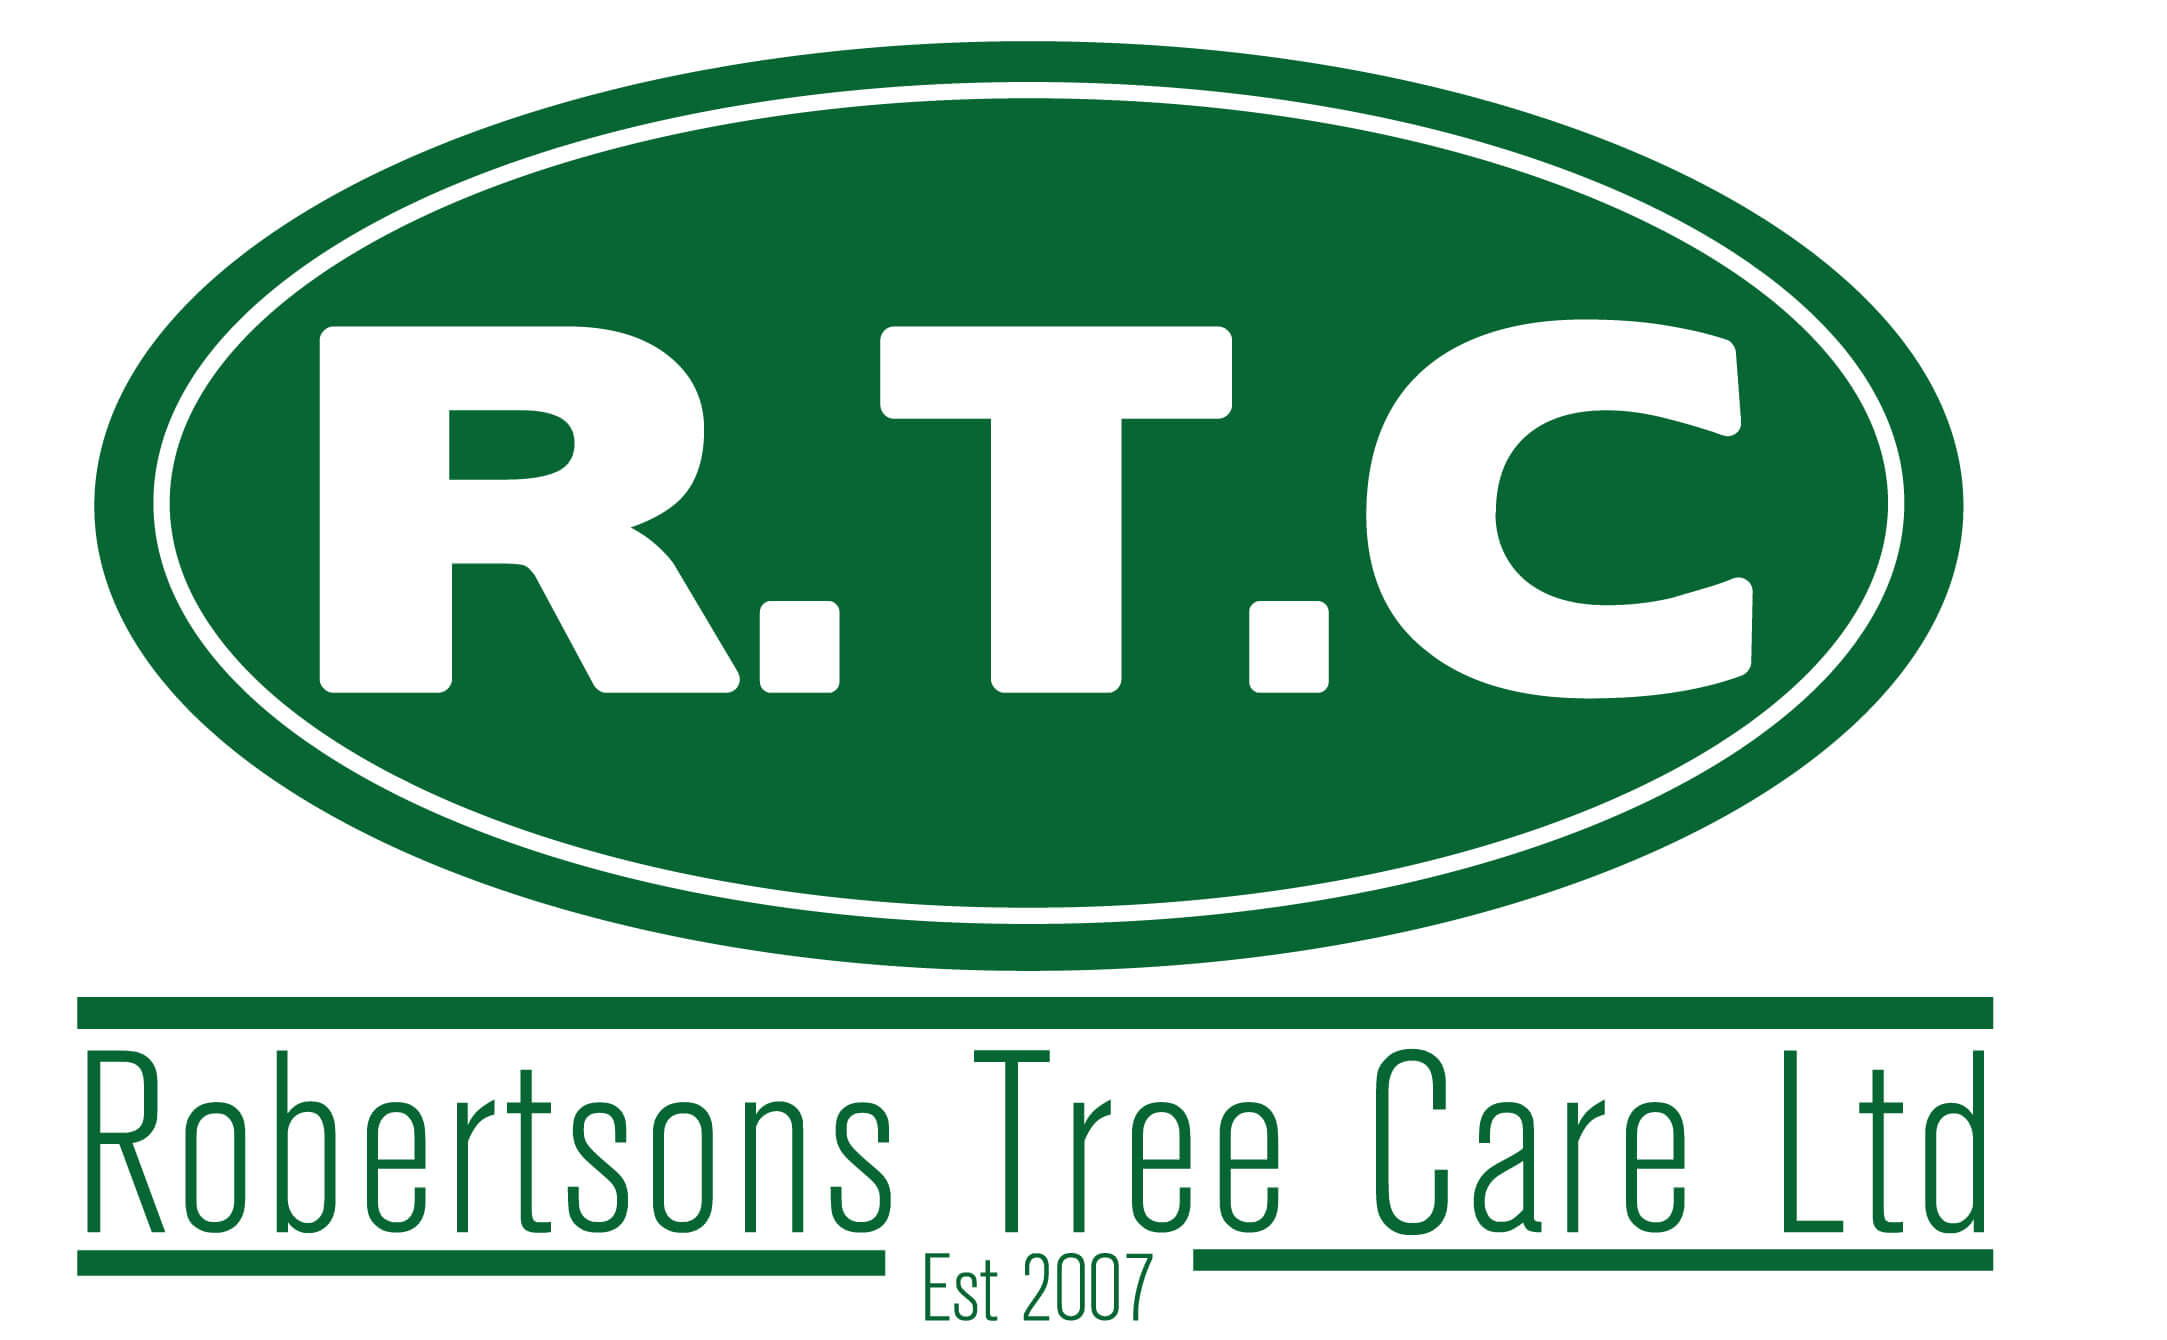 Robertsons Tree Care